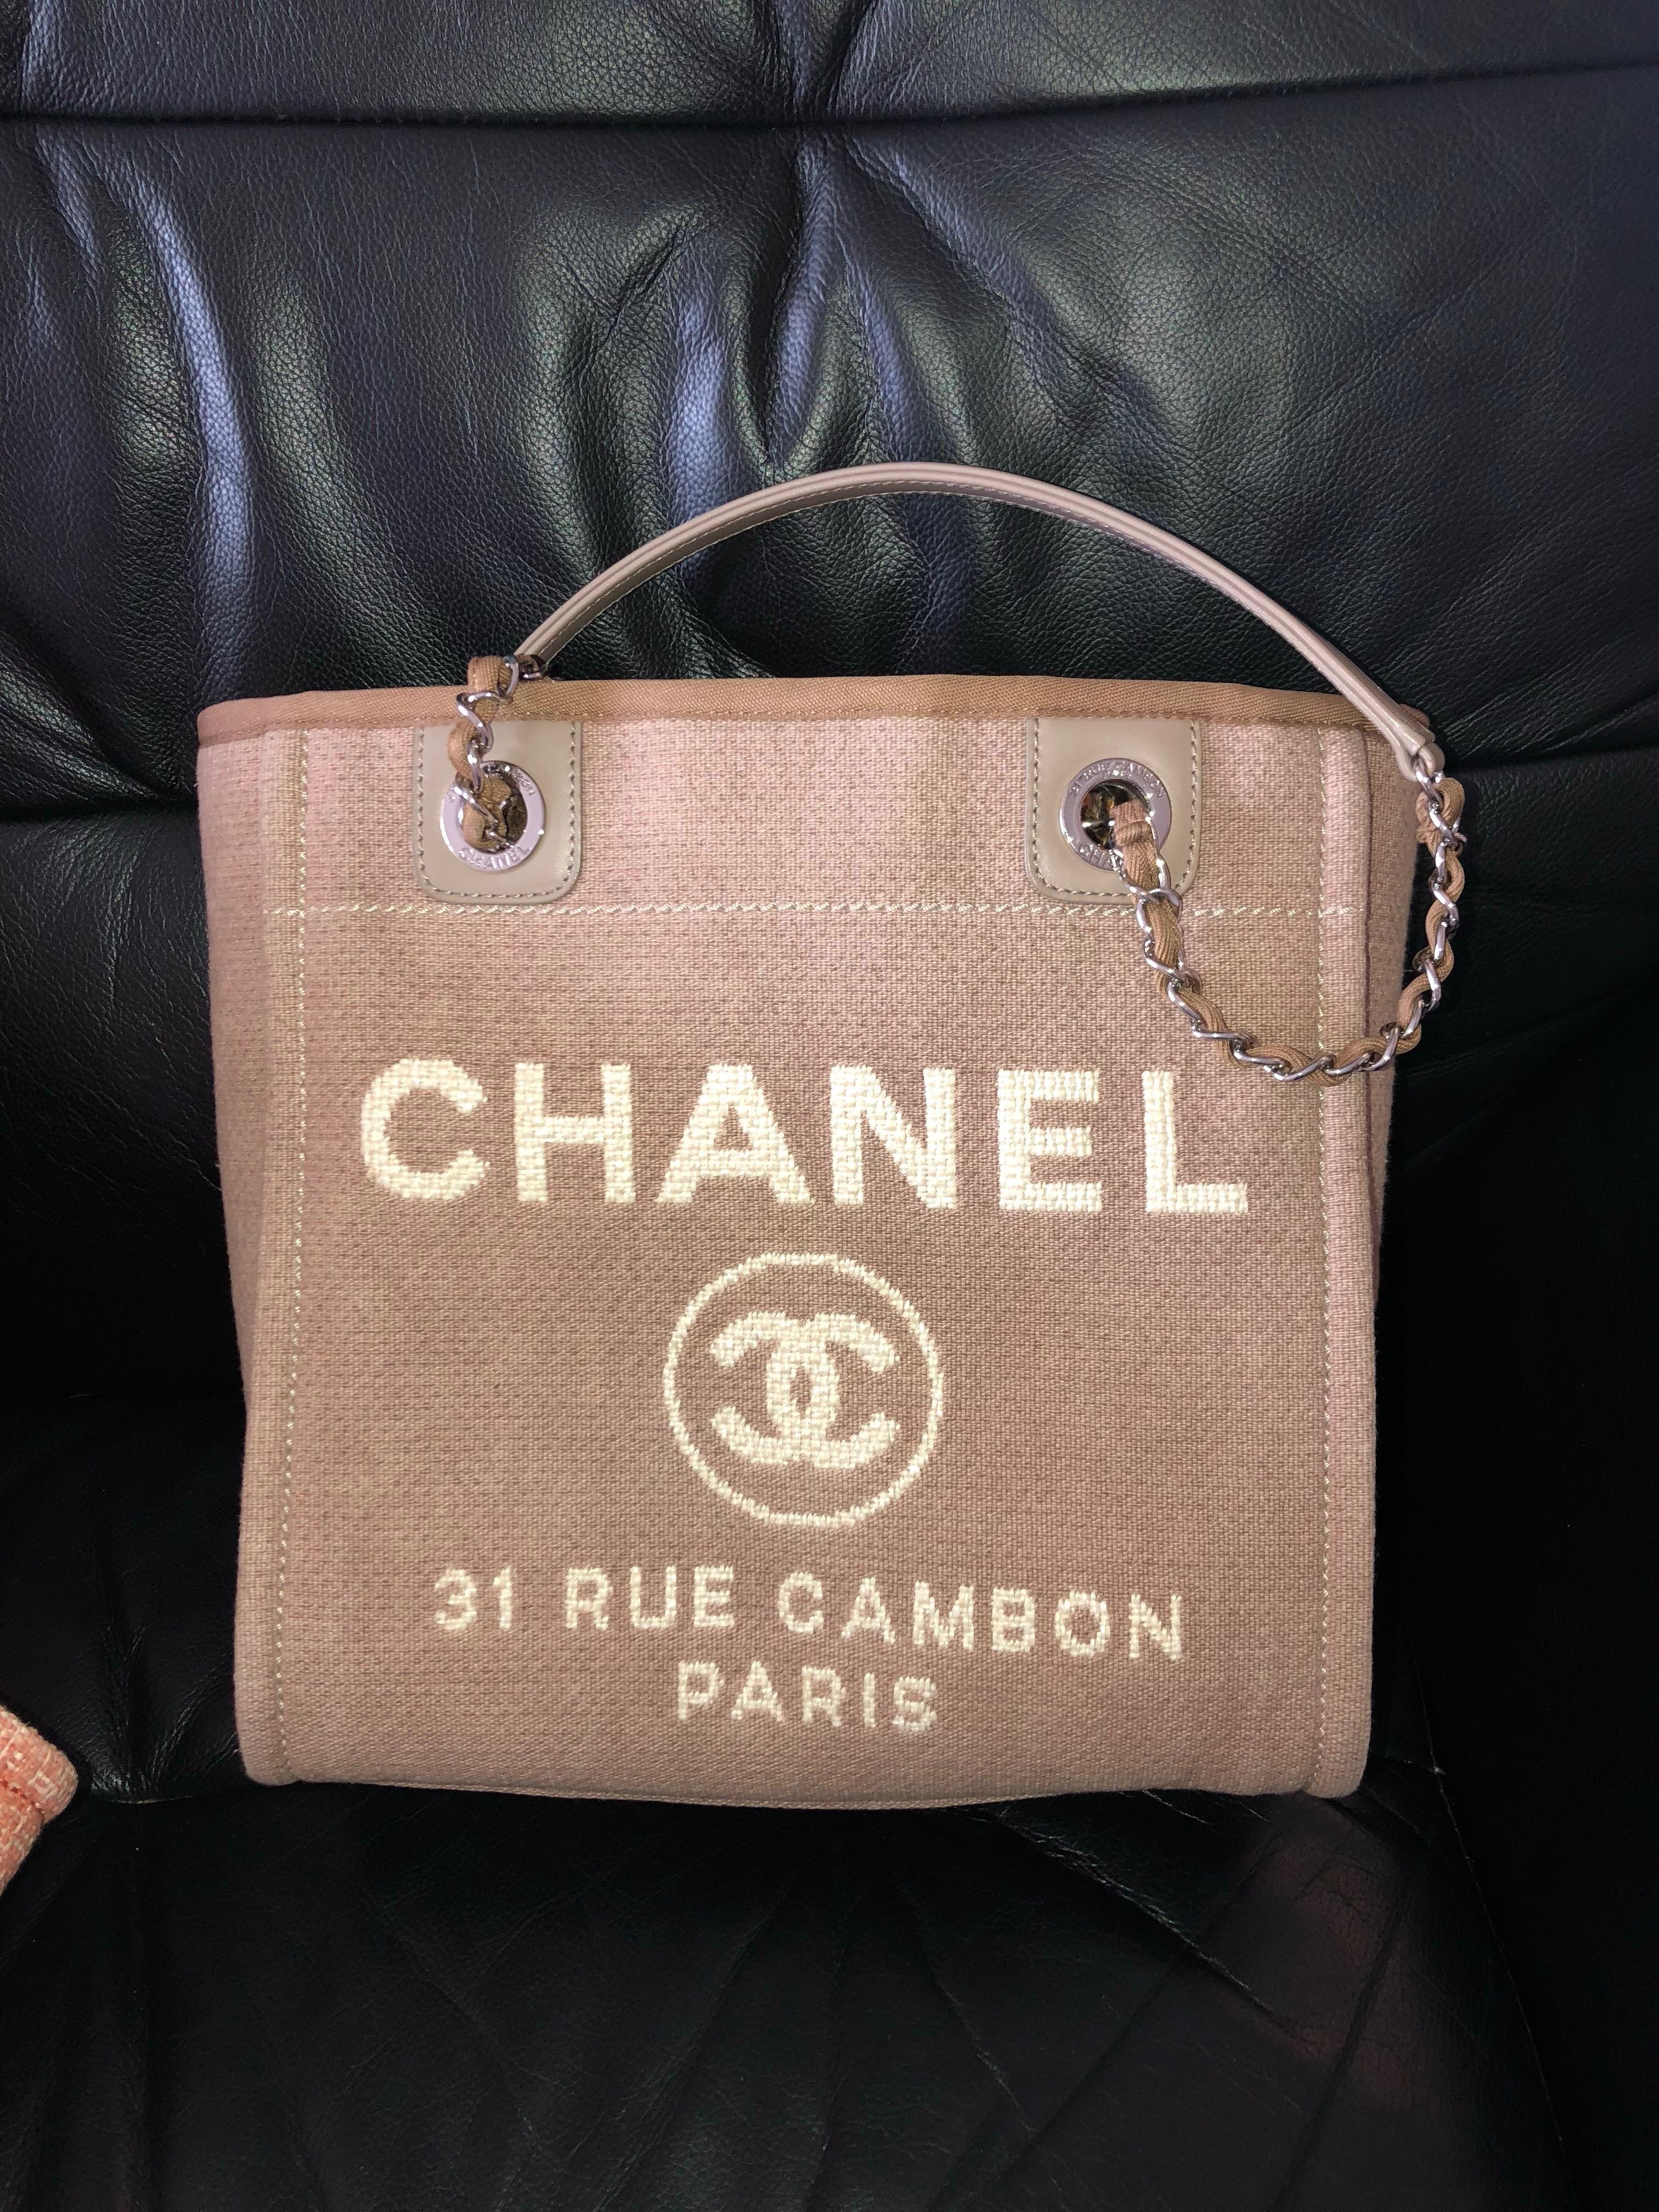 98a4331ed Chanel Deauville Tote Small, Luxury, Bags & Wallets, Handbags on Carousell